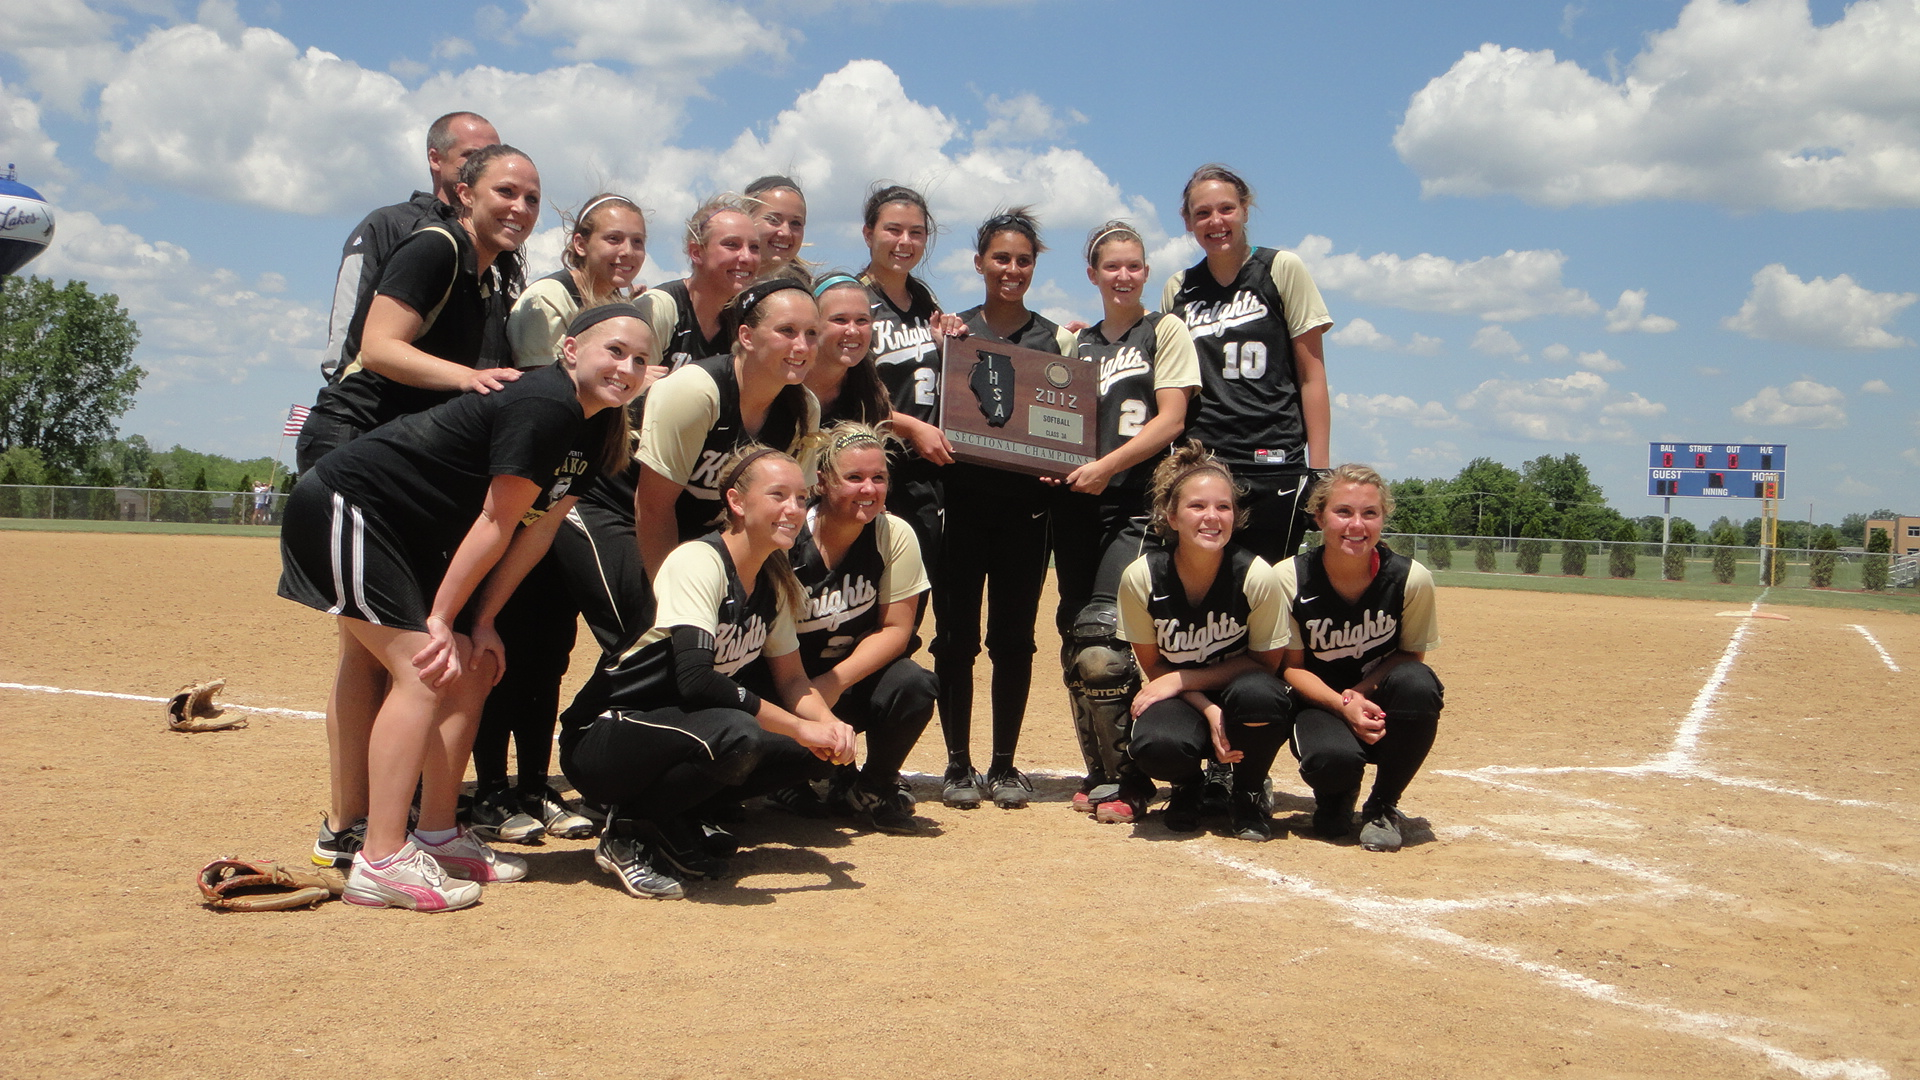 Grayslake North wins the 2012 Sectional Title